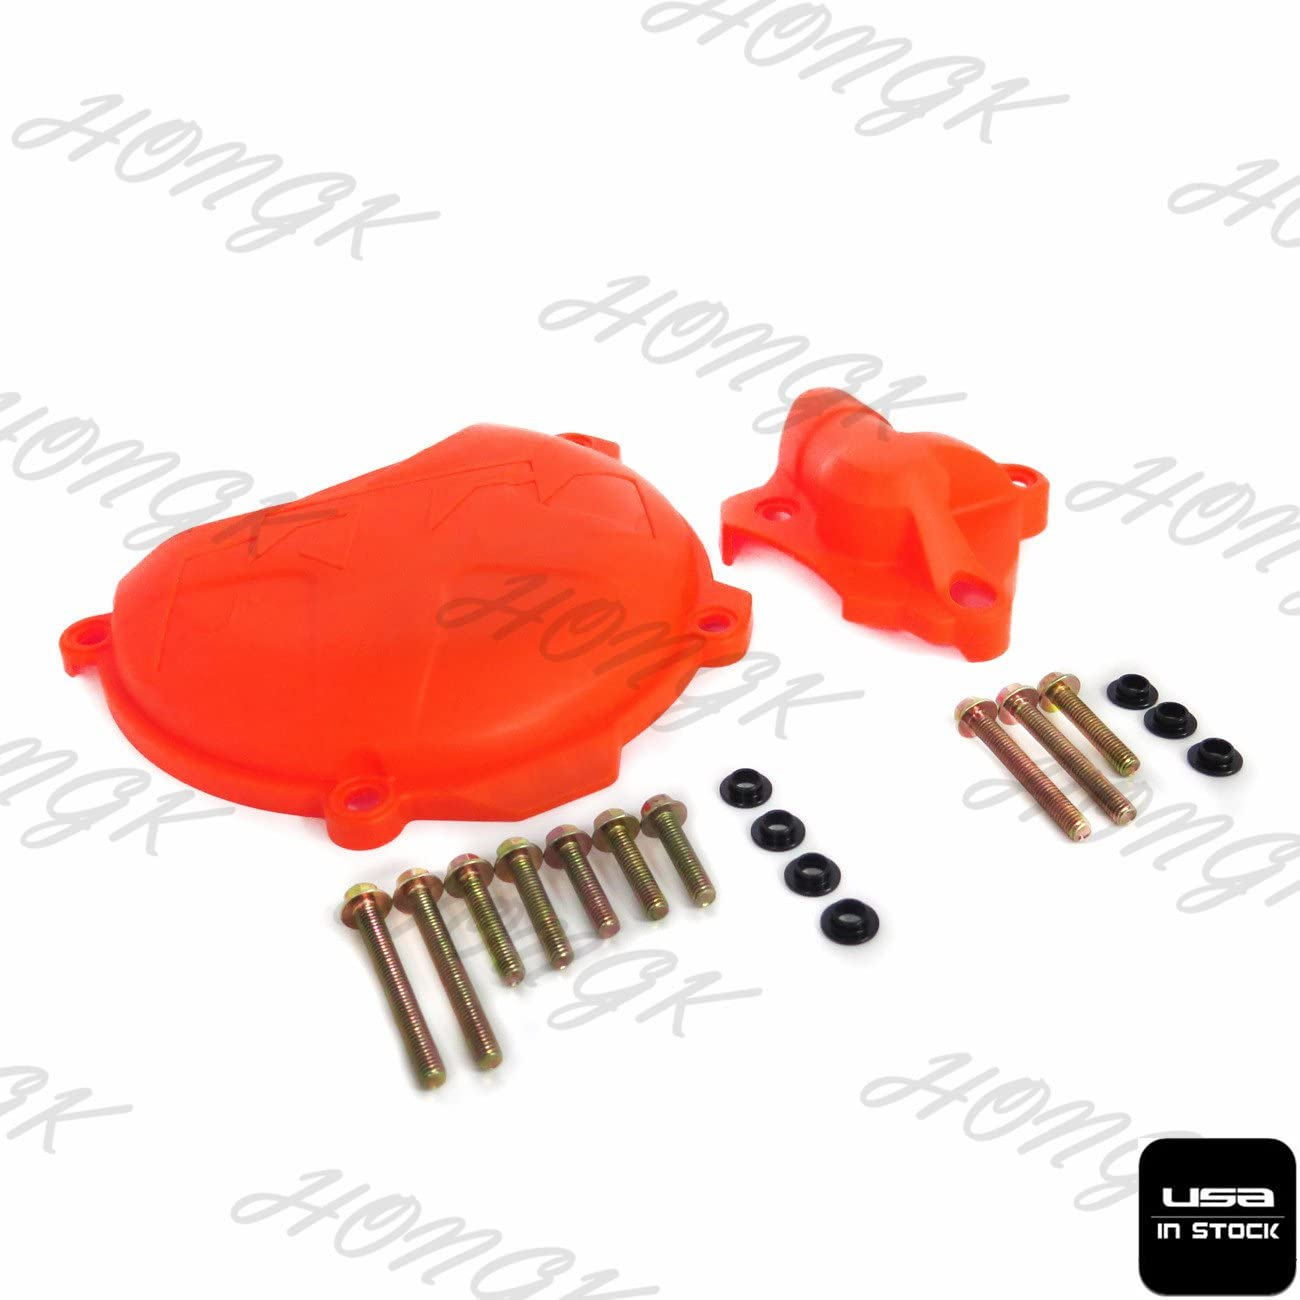 Orange Clutch Cover Protection W//Water Pump Protector Compatible with KTM 250 EXC-F 2014-16 B072W7HDRC HONGK